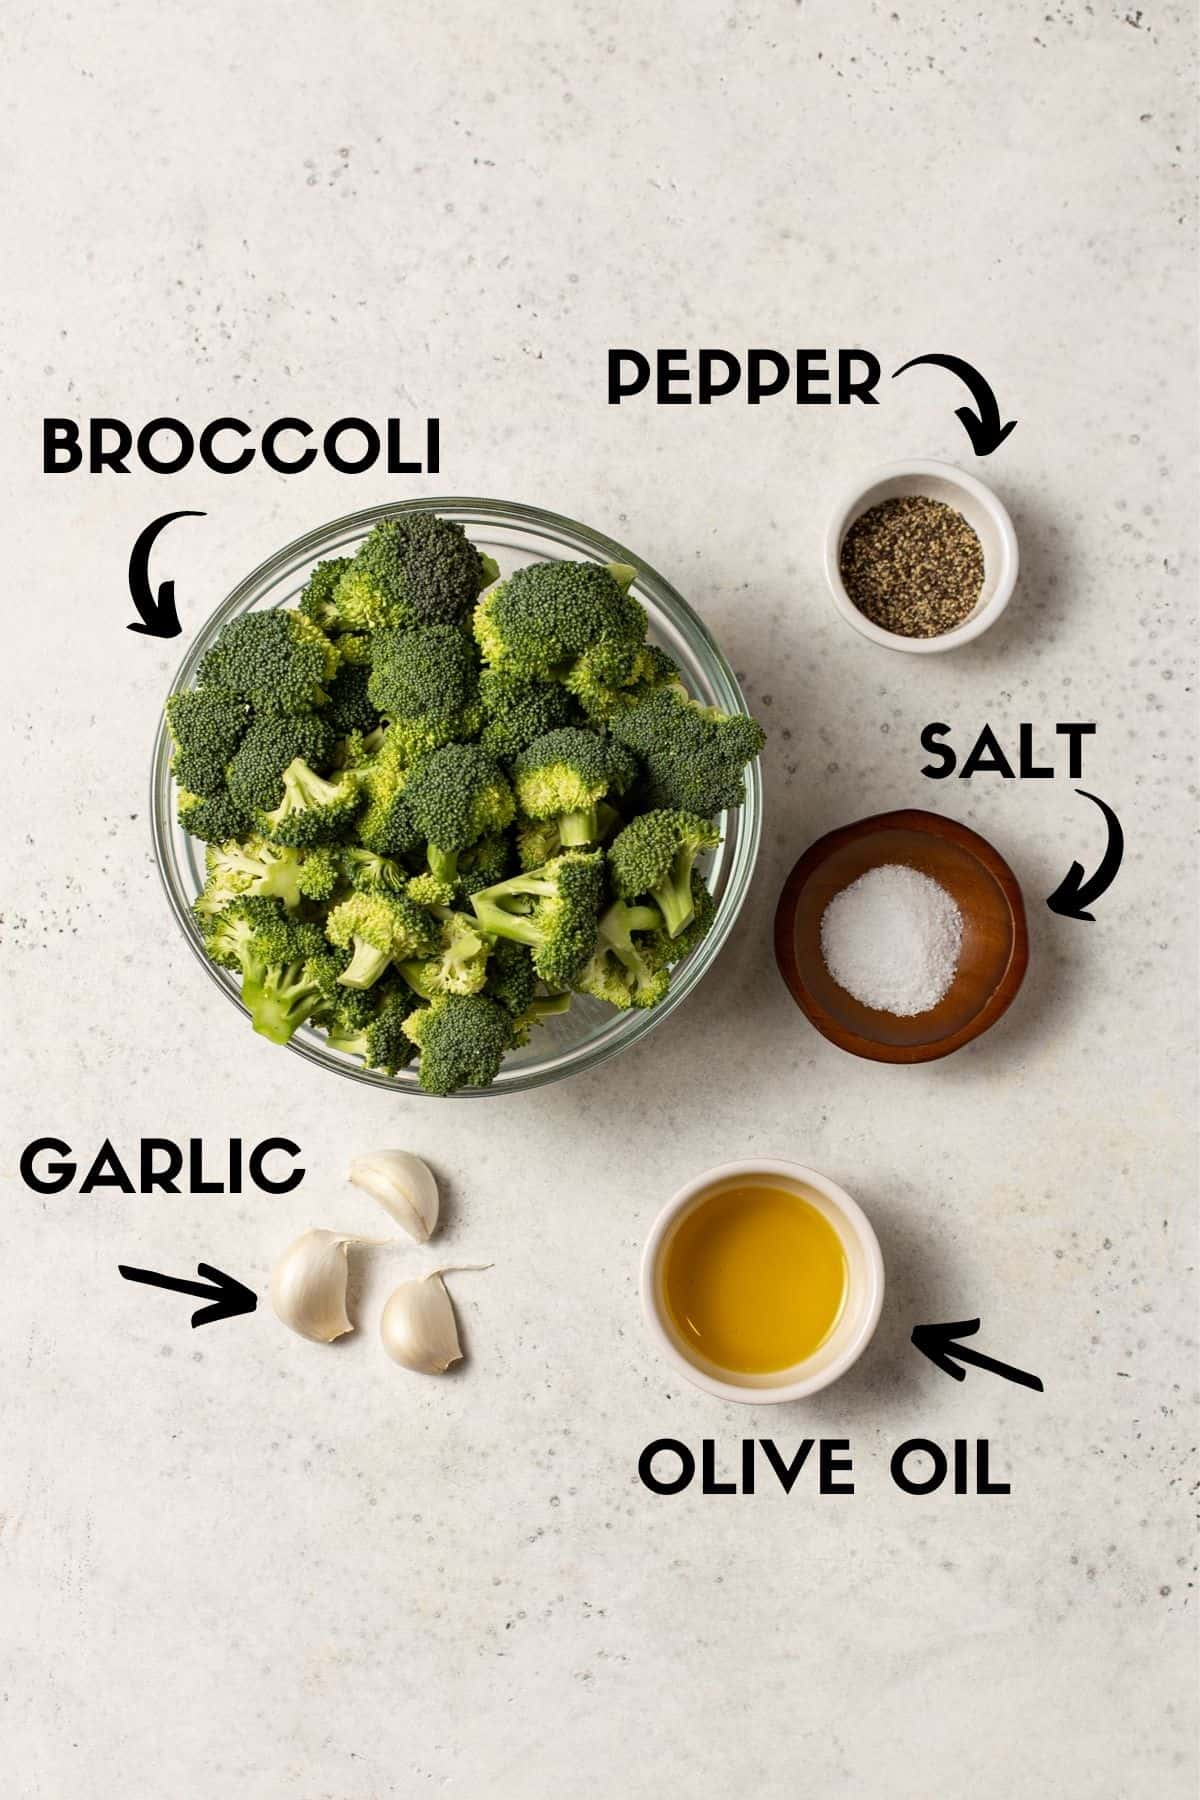 Roasted broccoli ingredients in bowls.